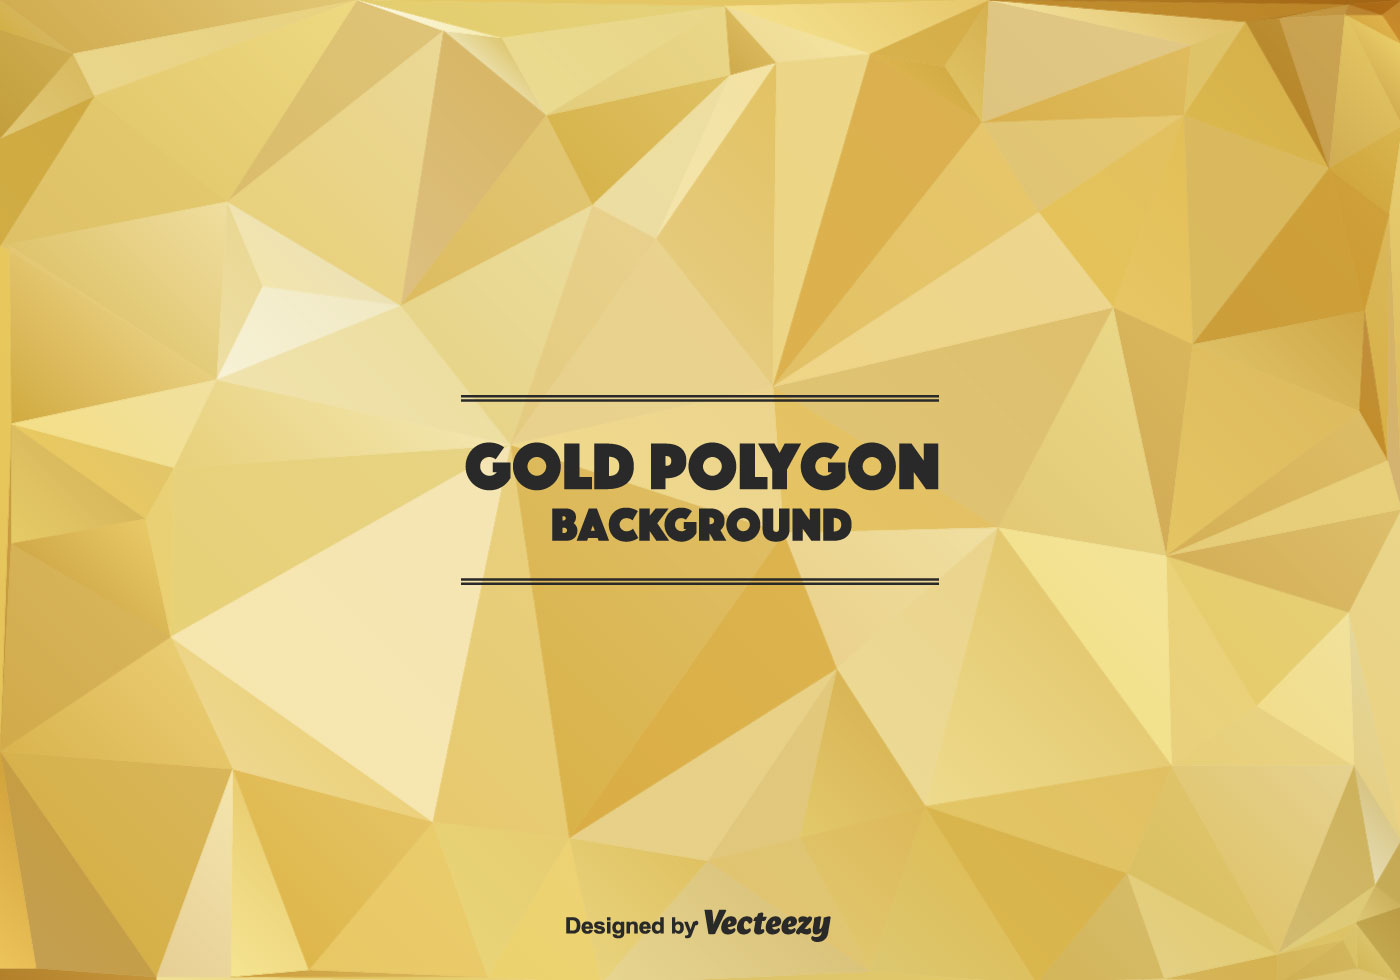 Pics photos abstract green wallpaper network - Polygonal Gold Vector Background Download Free Vector